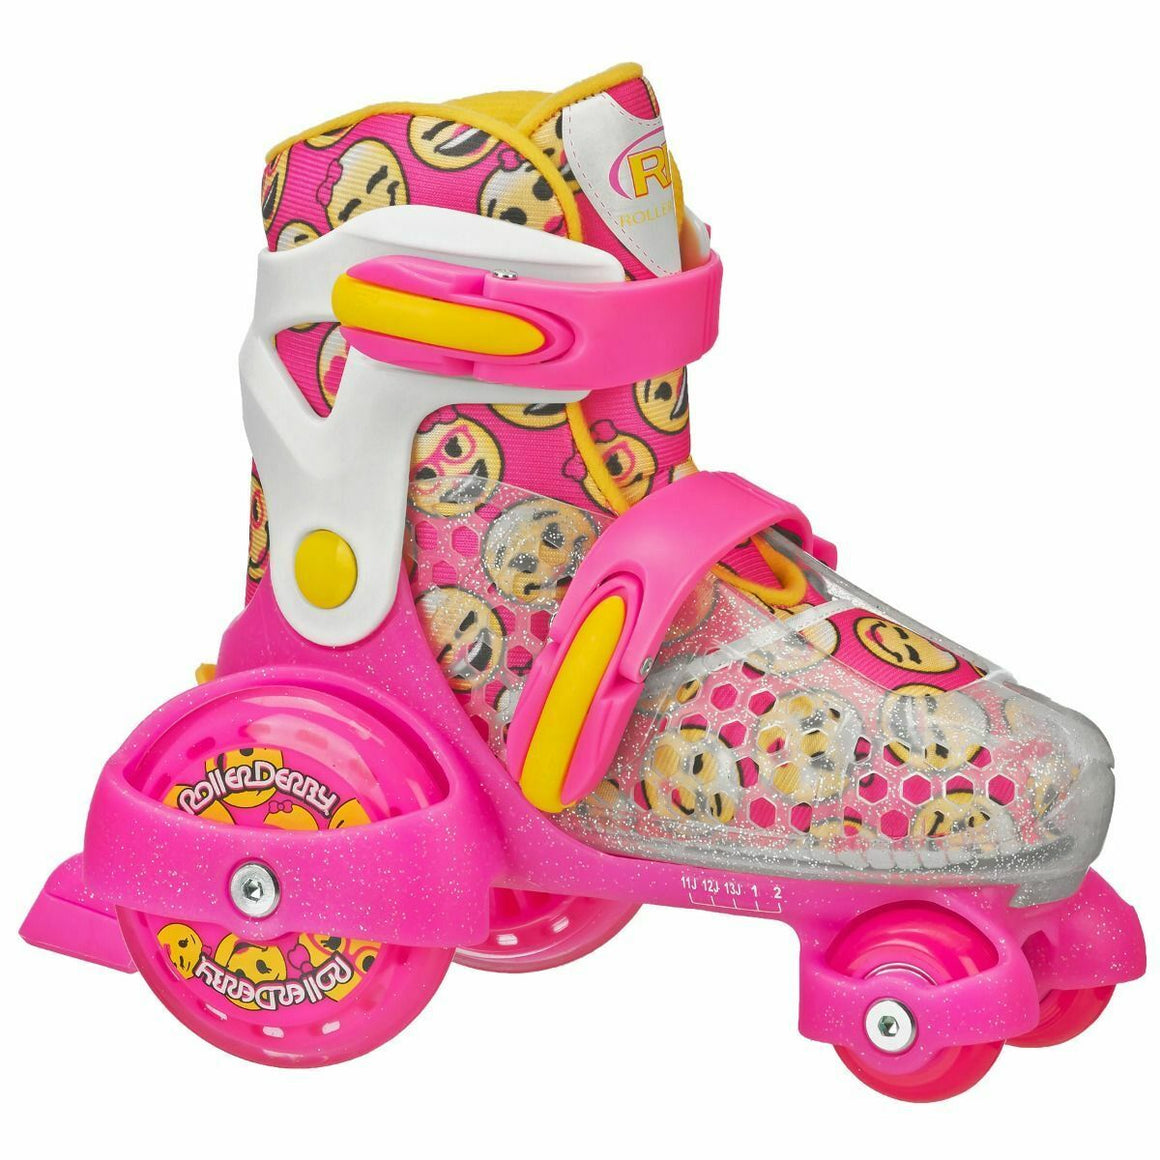 Roller Derby Adjustable Toddler Skate Size J7-J11